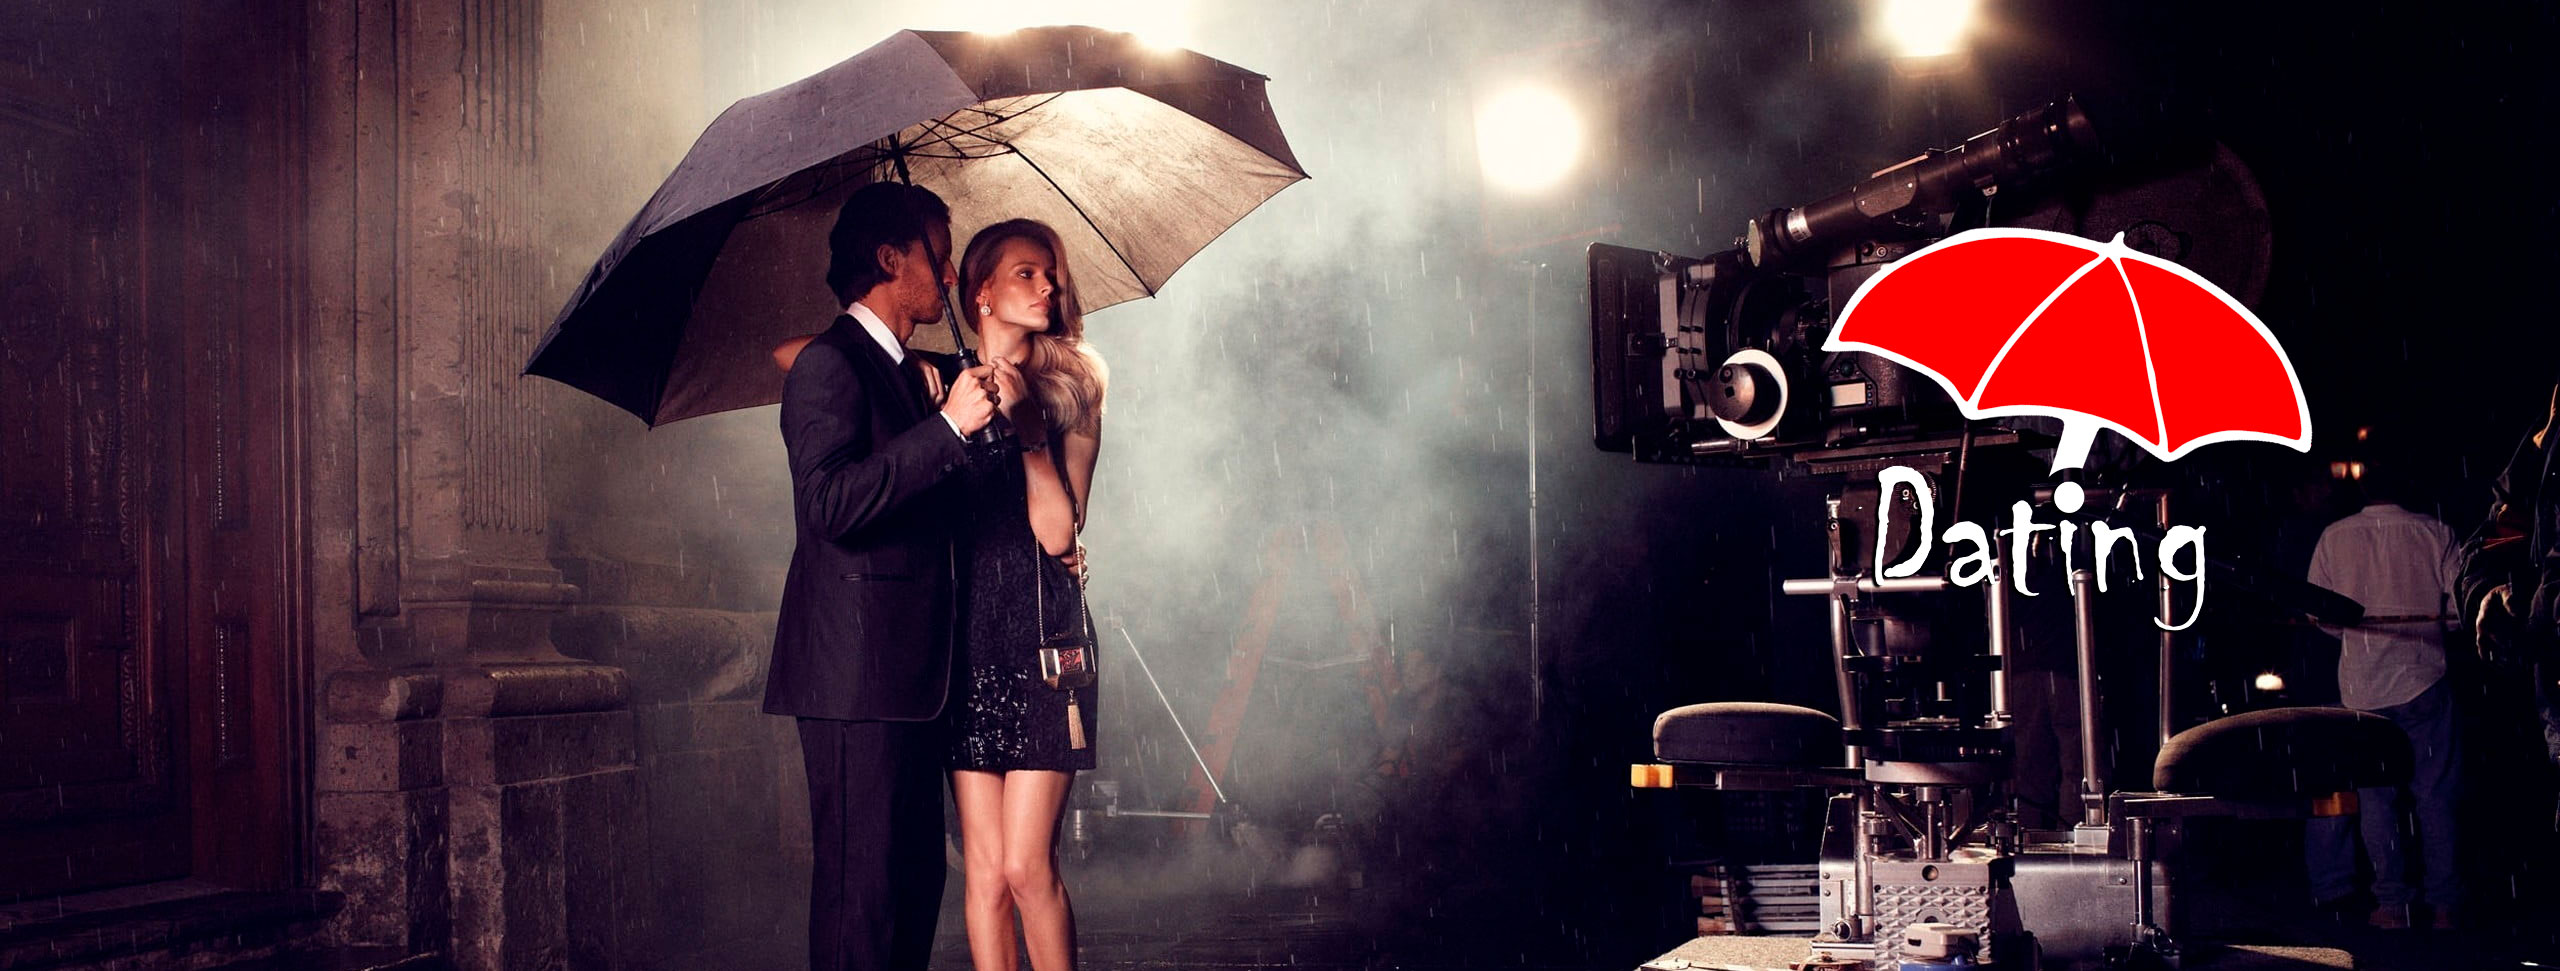 Umbrella Dating - Network of niche dating Apps